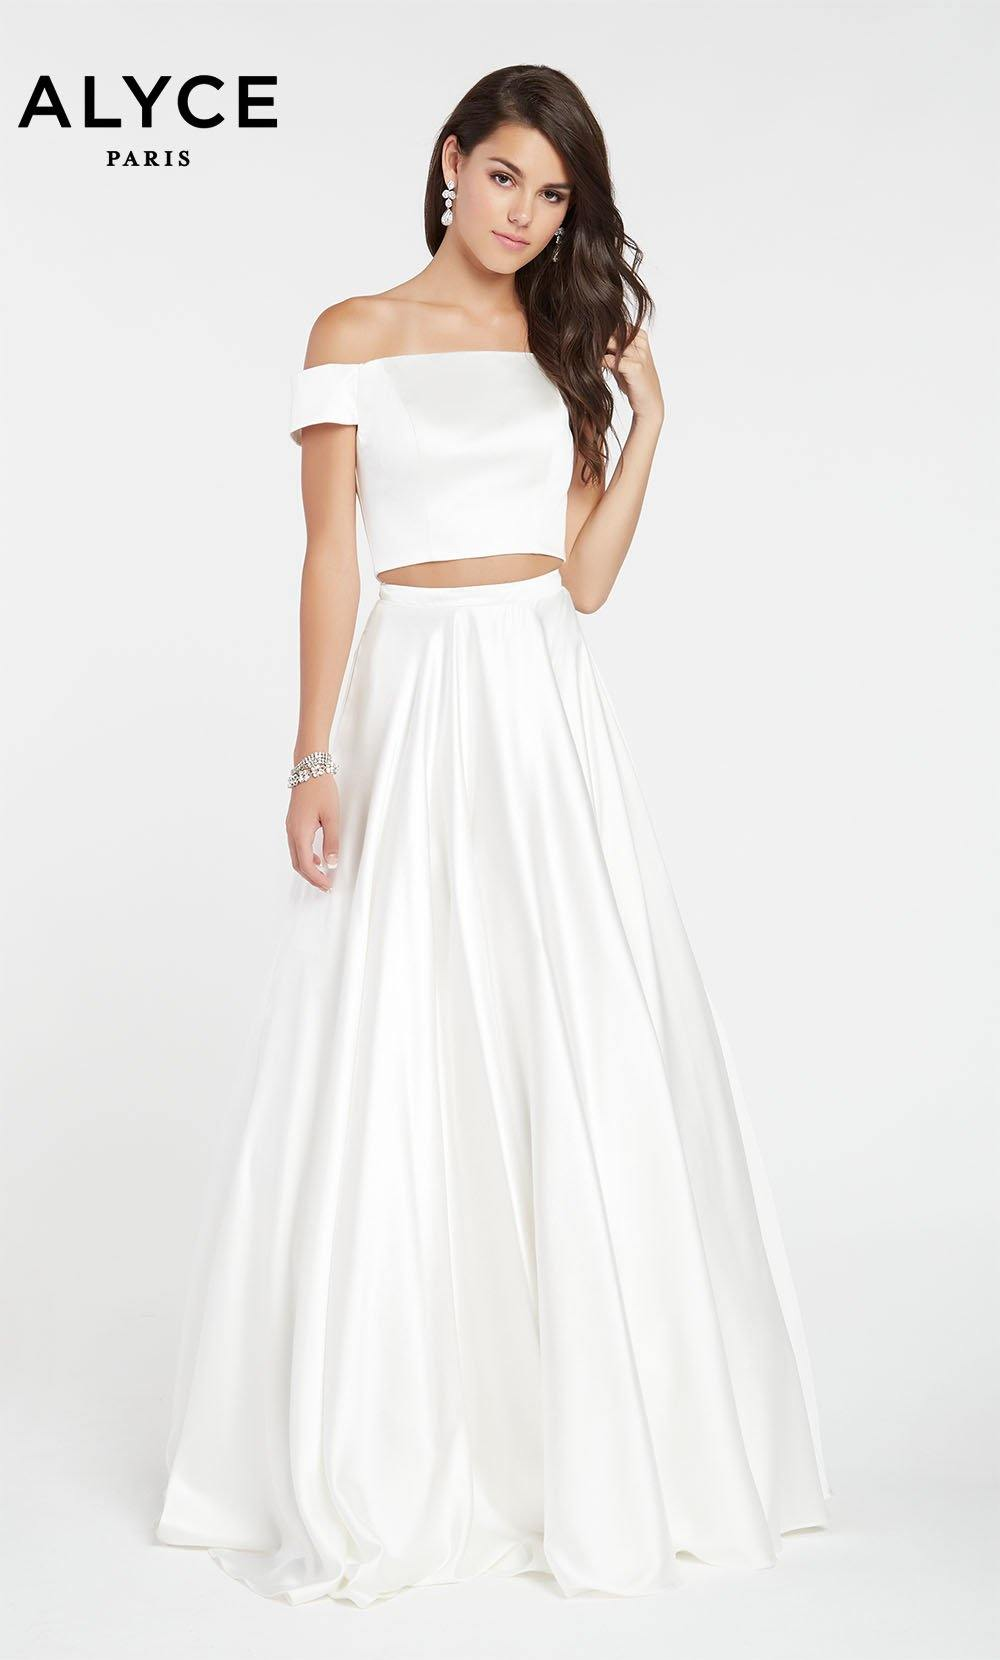 Diamond White satin off the shoulder two piece prom dress